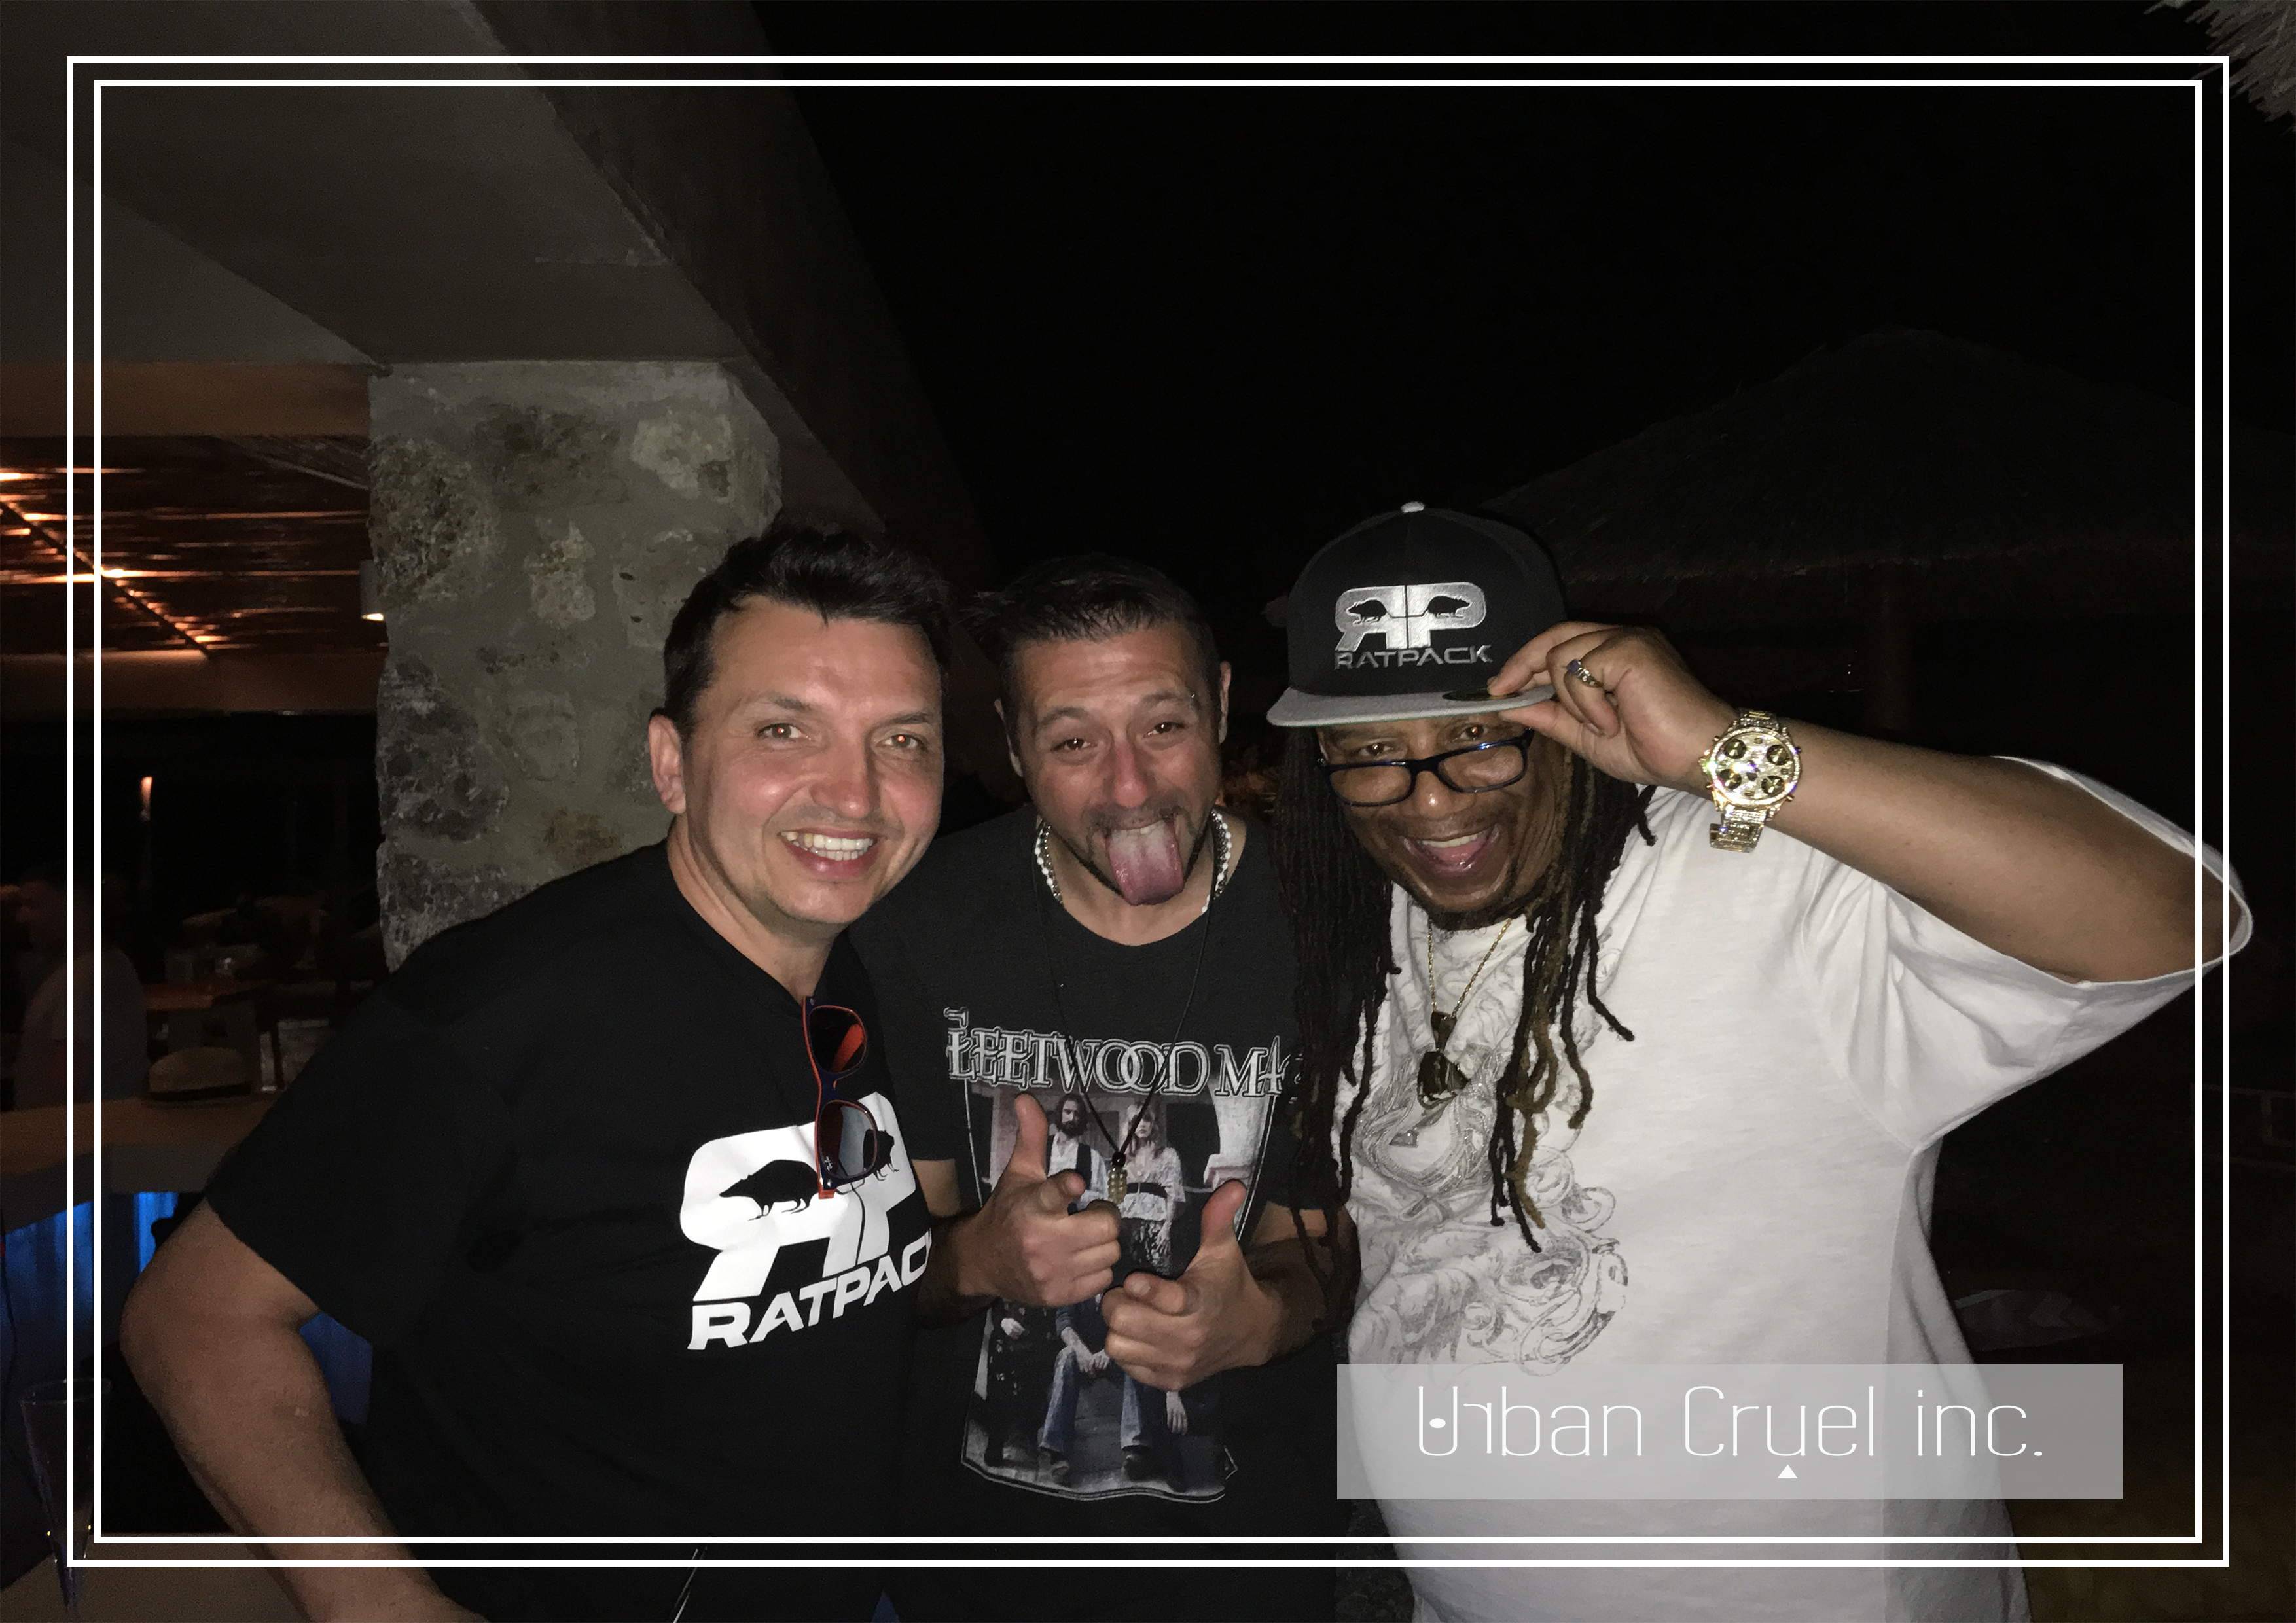 Andy Stone DJ - Ratpack Support Corfu 20